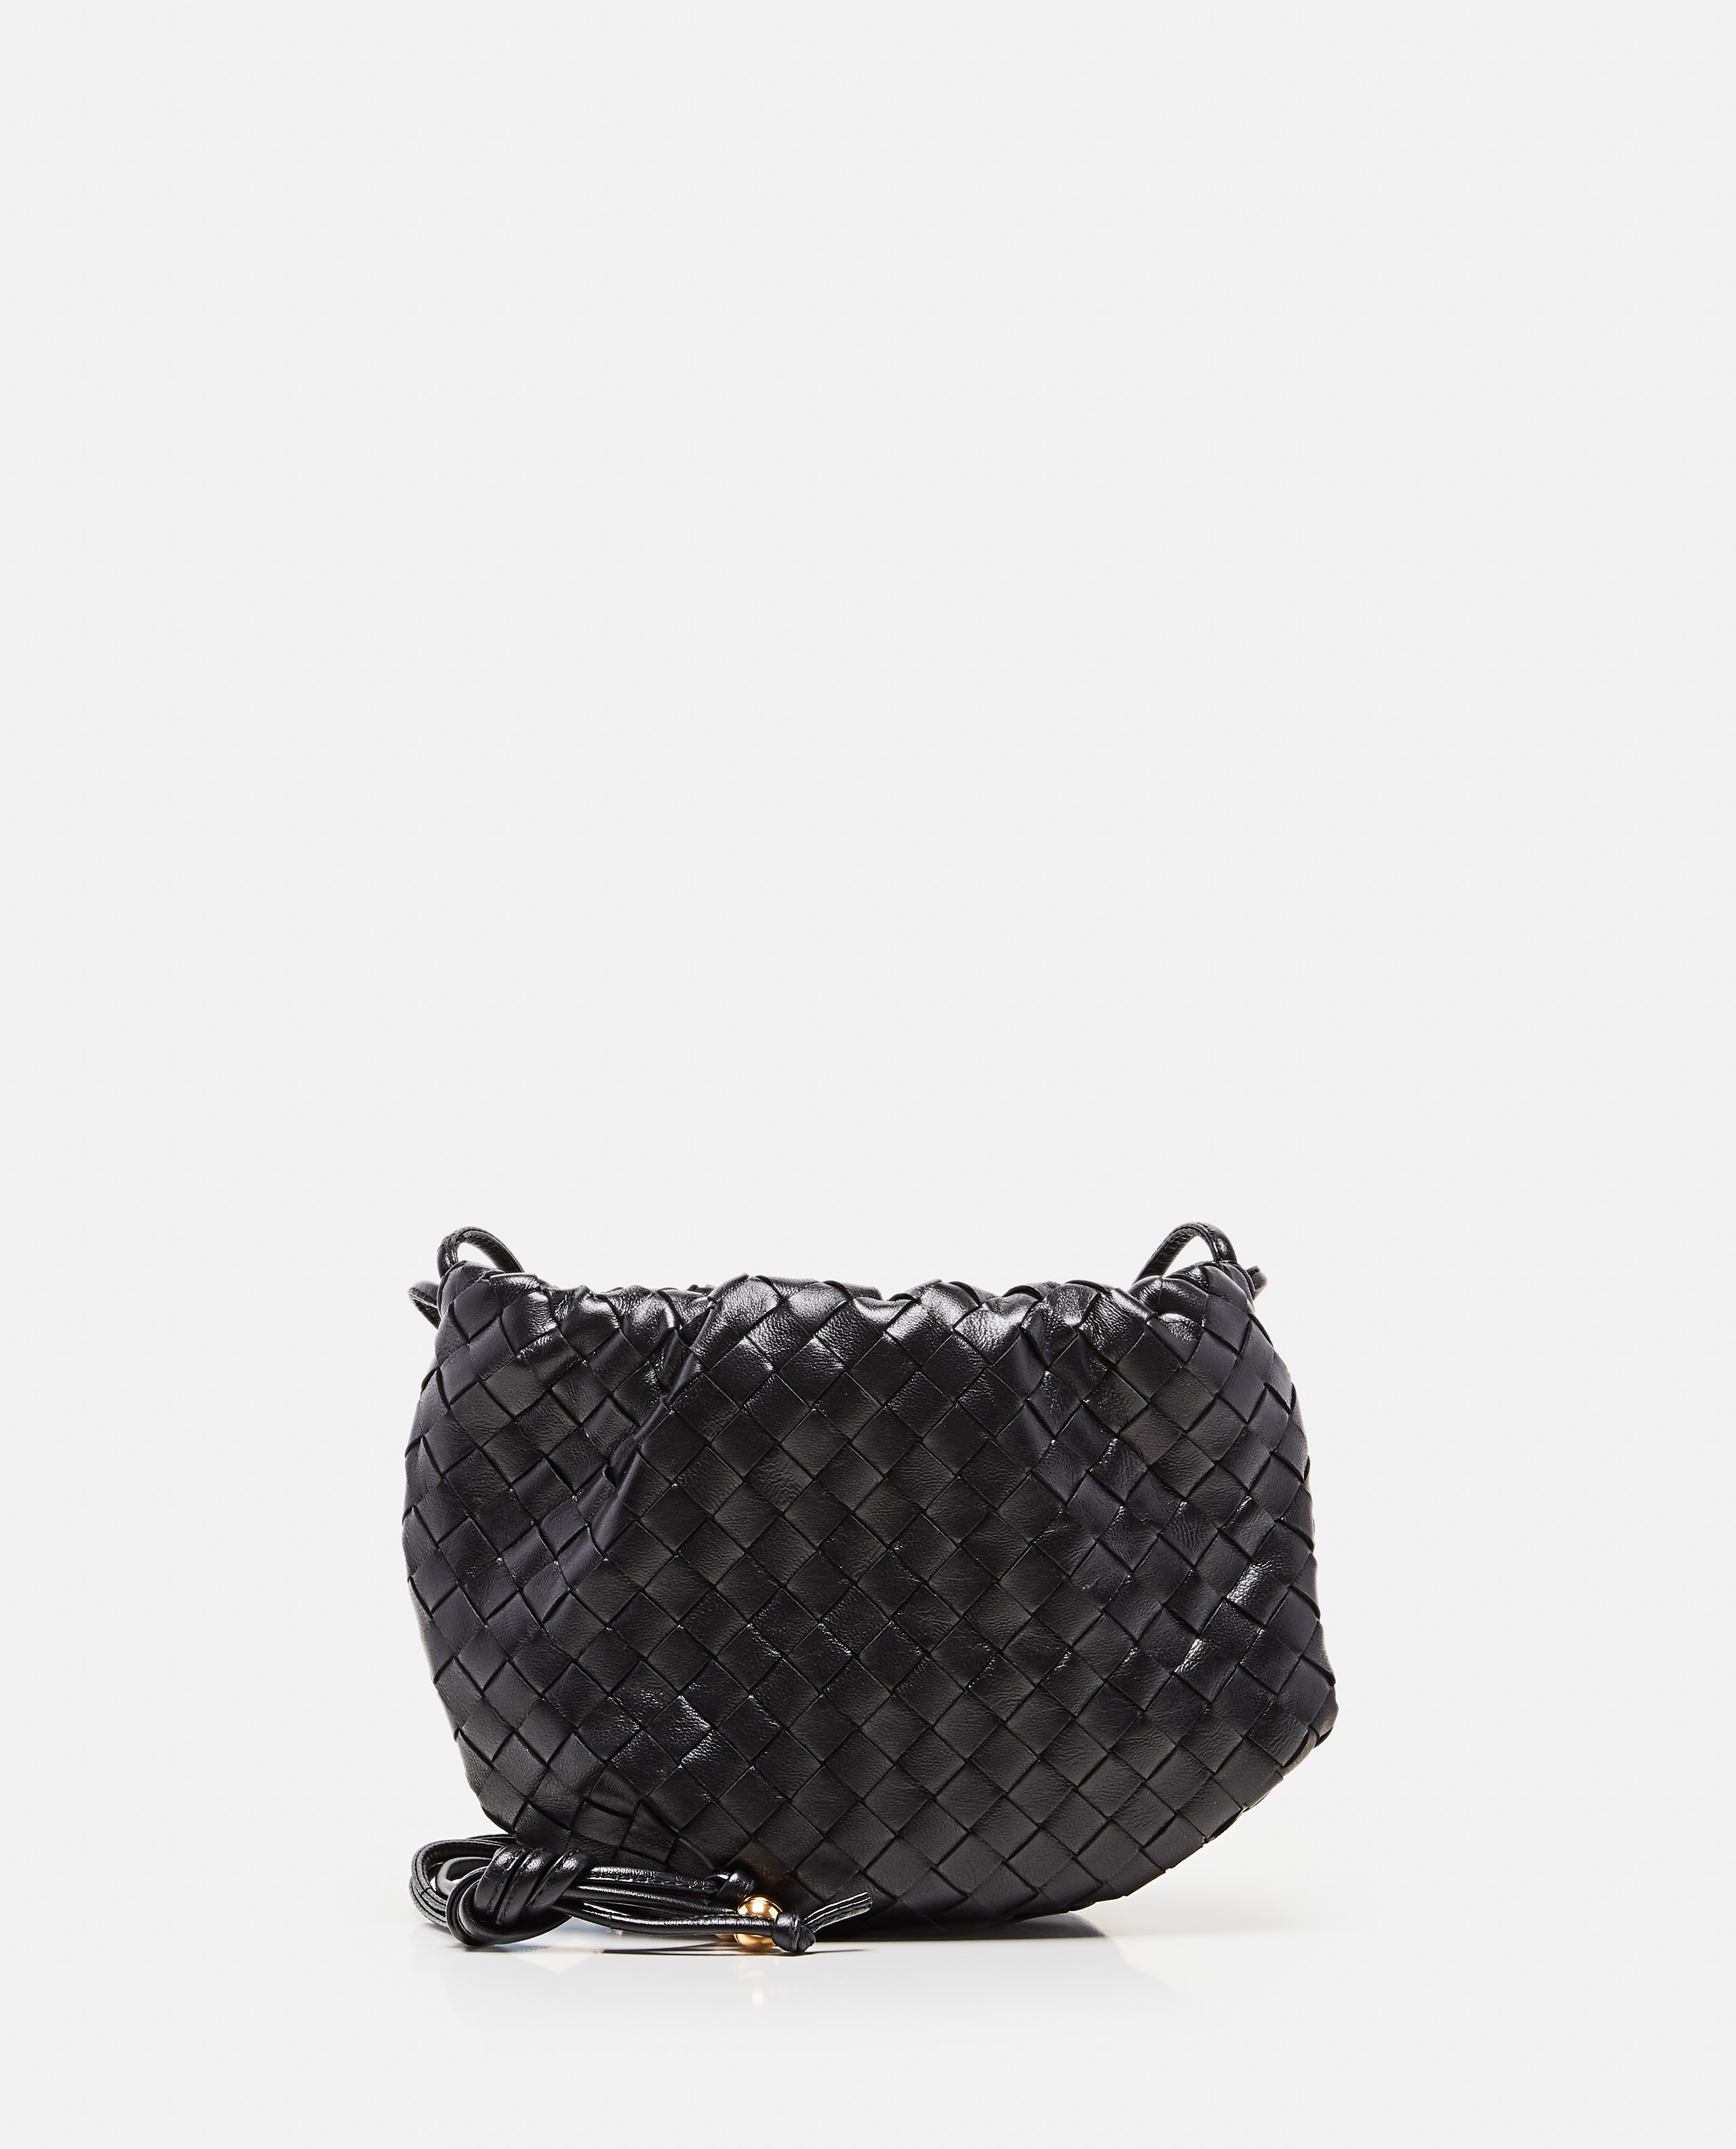 Bottega Veneta The Bulb Mini Bag In Black